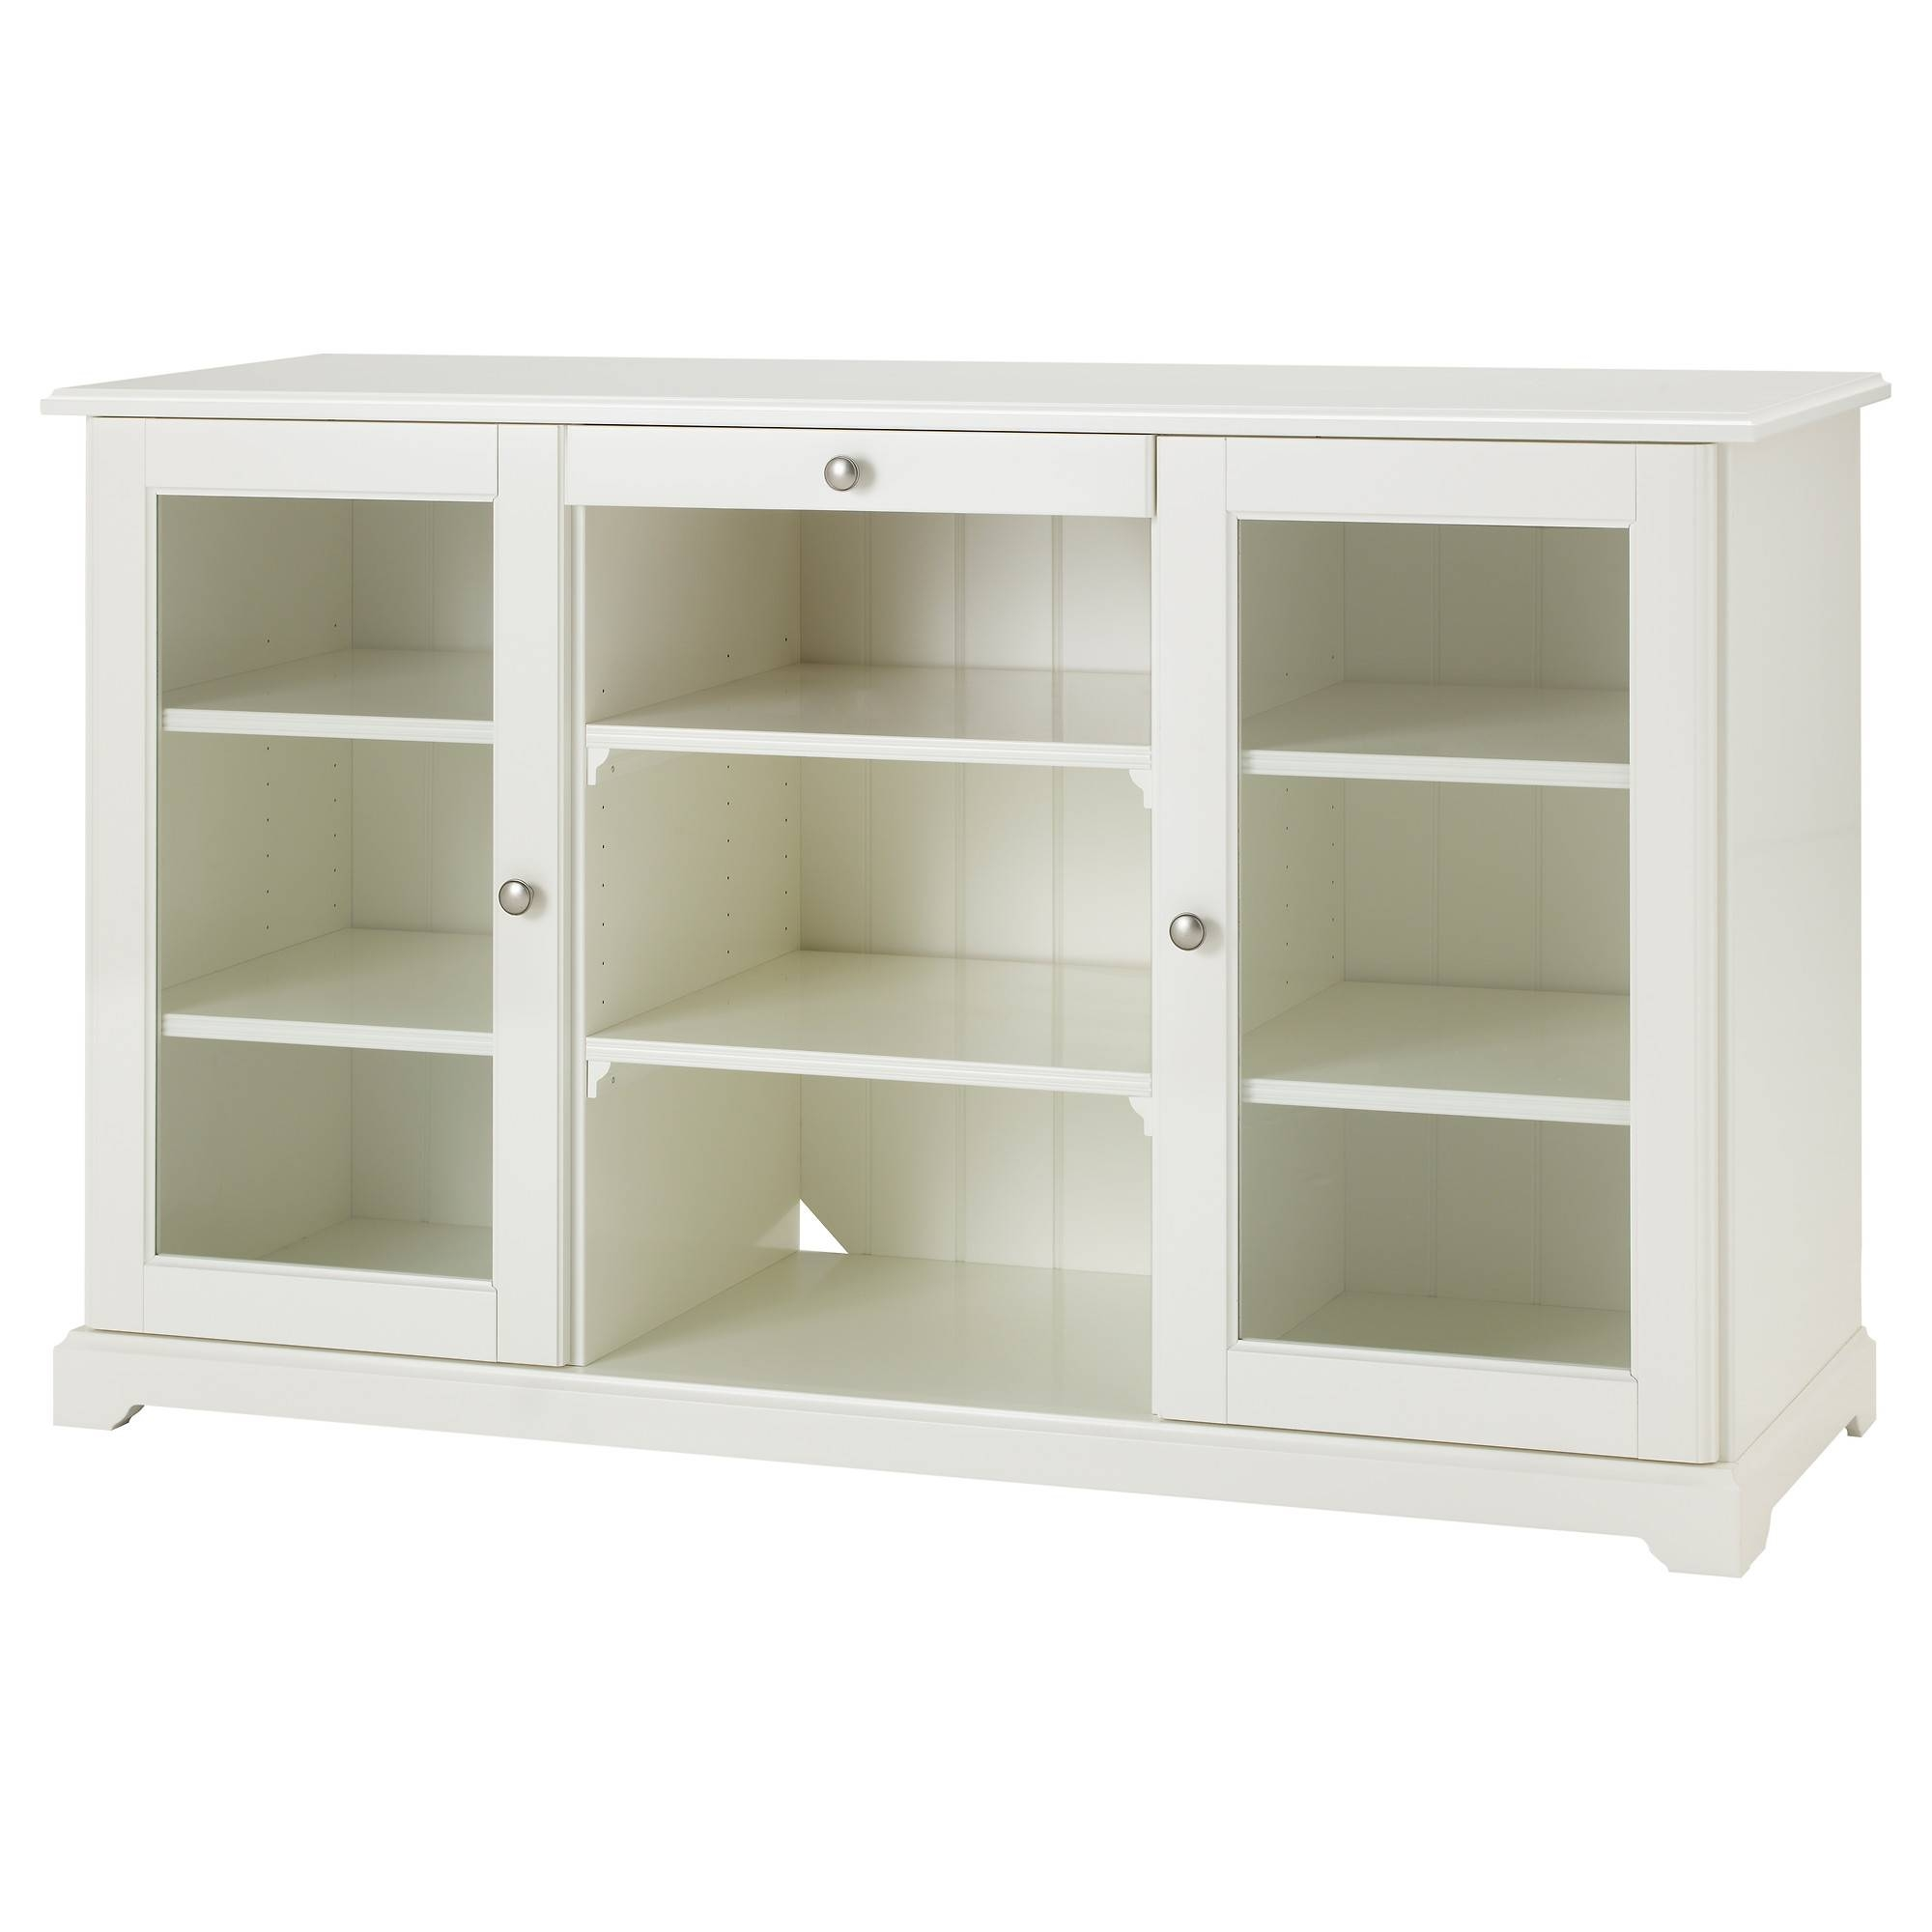 Buffet Tables & Sideboards - Ikea throughout Small Mirrored Sideboards (Image 3 of 30)